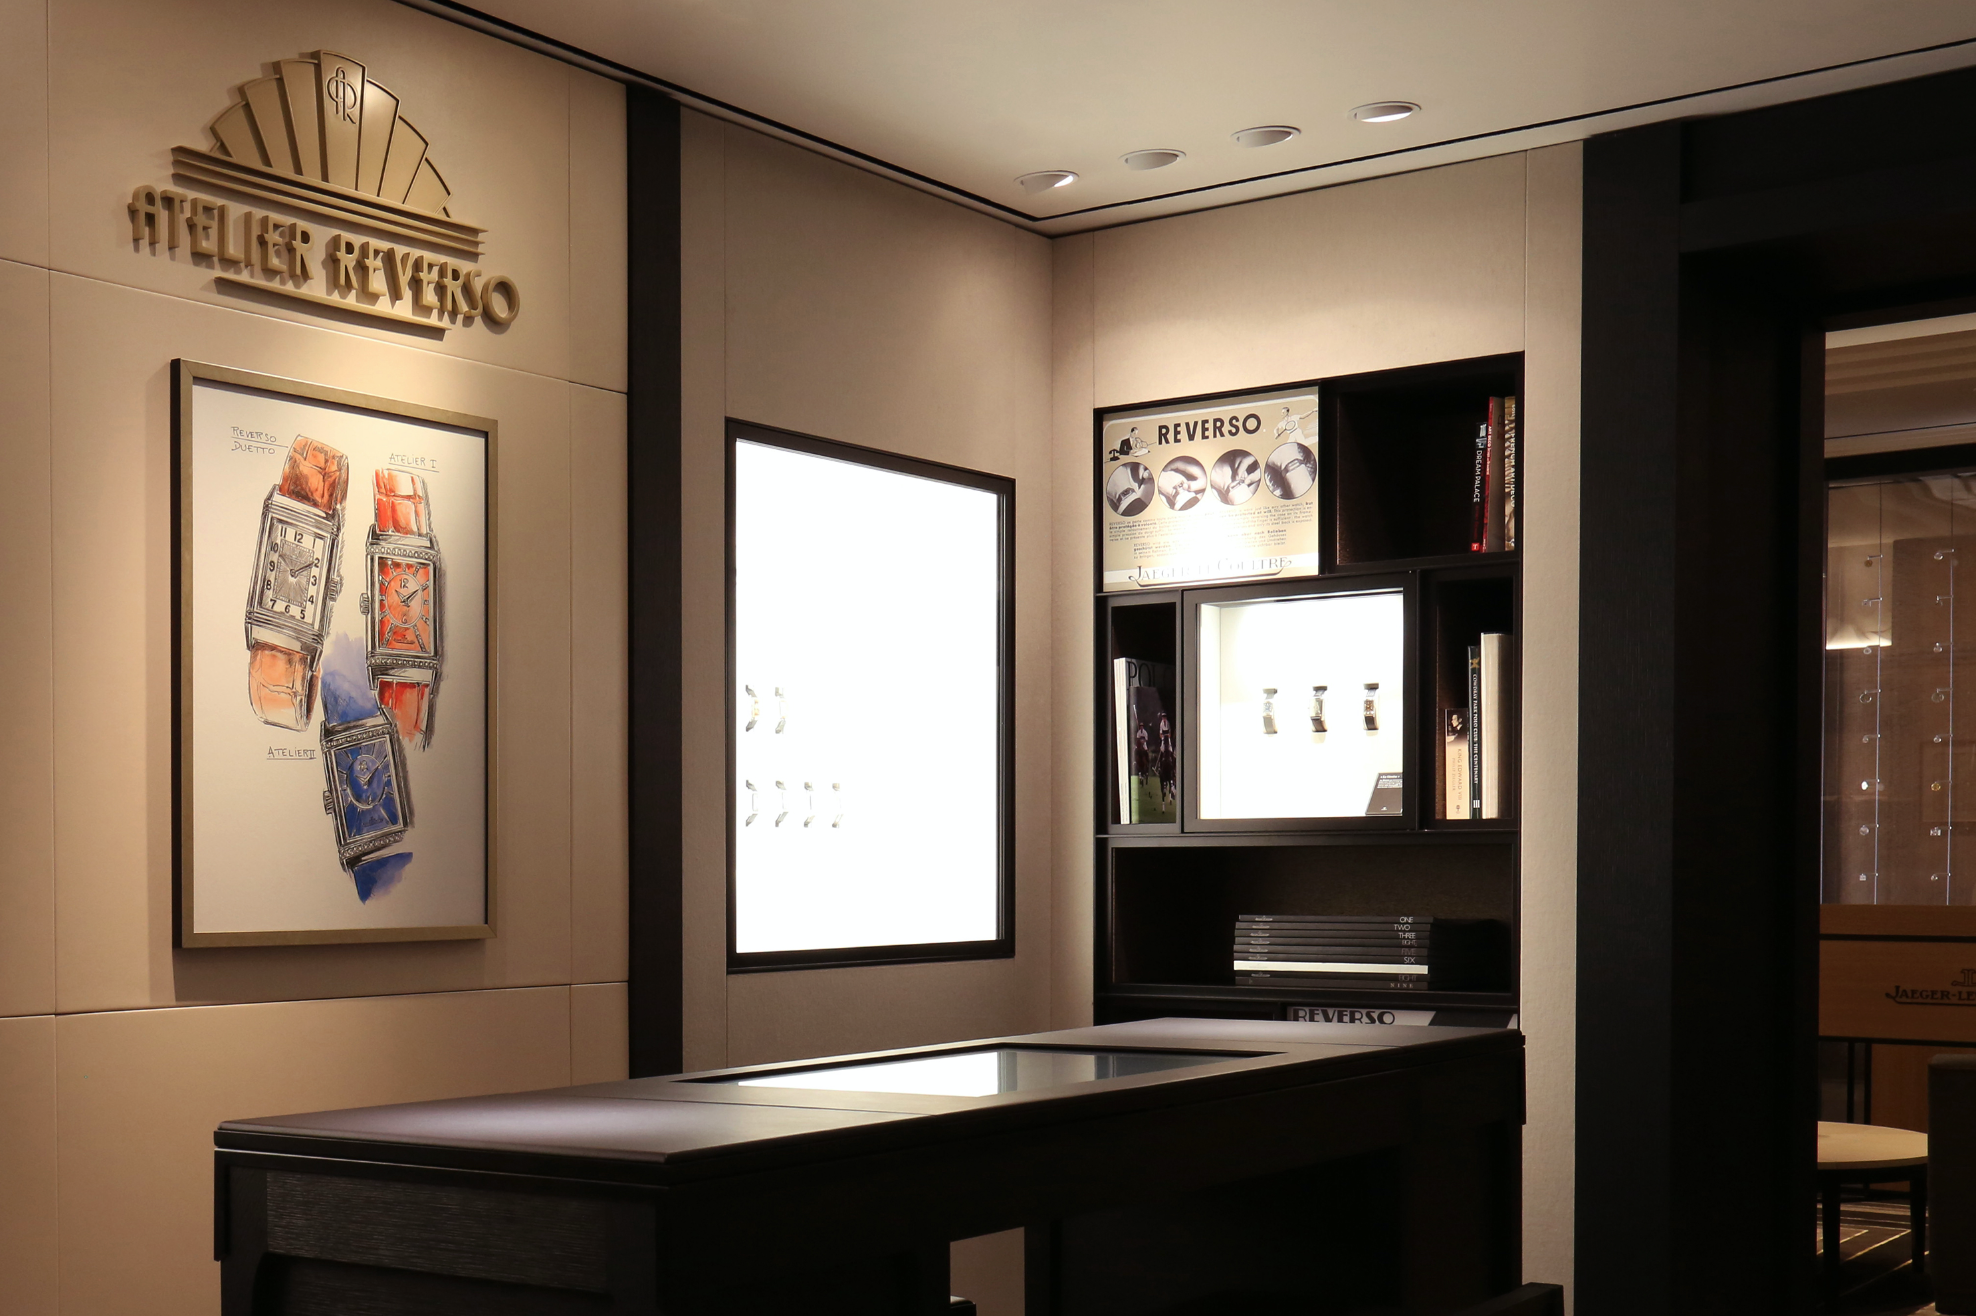 Atelier Reverso, Jaeger-LeCoultre Flagship Boutique in London (2)